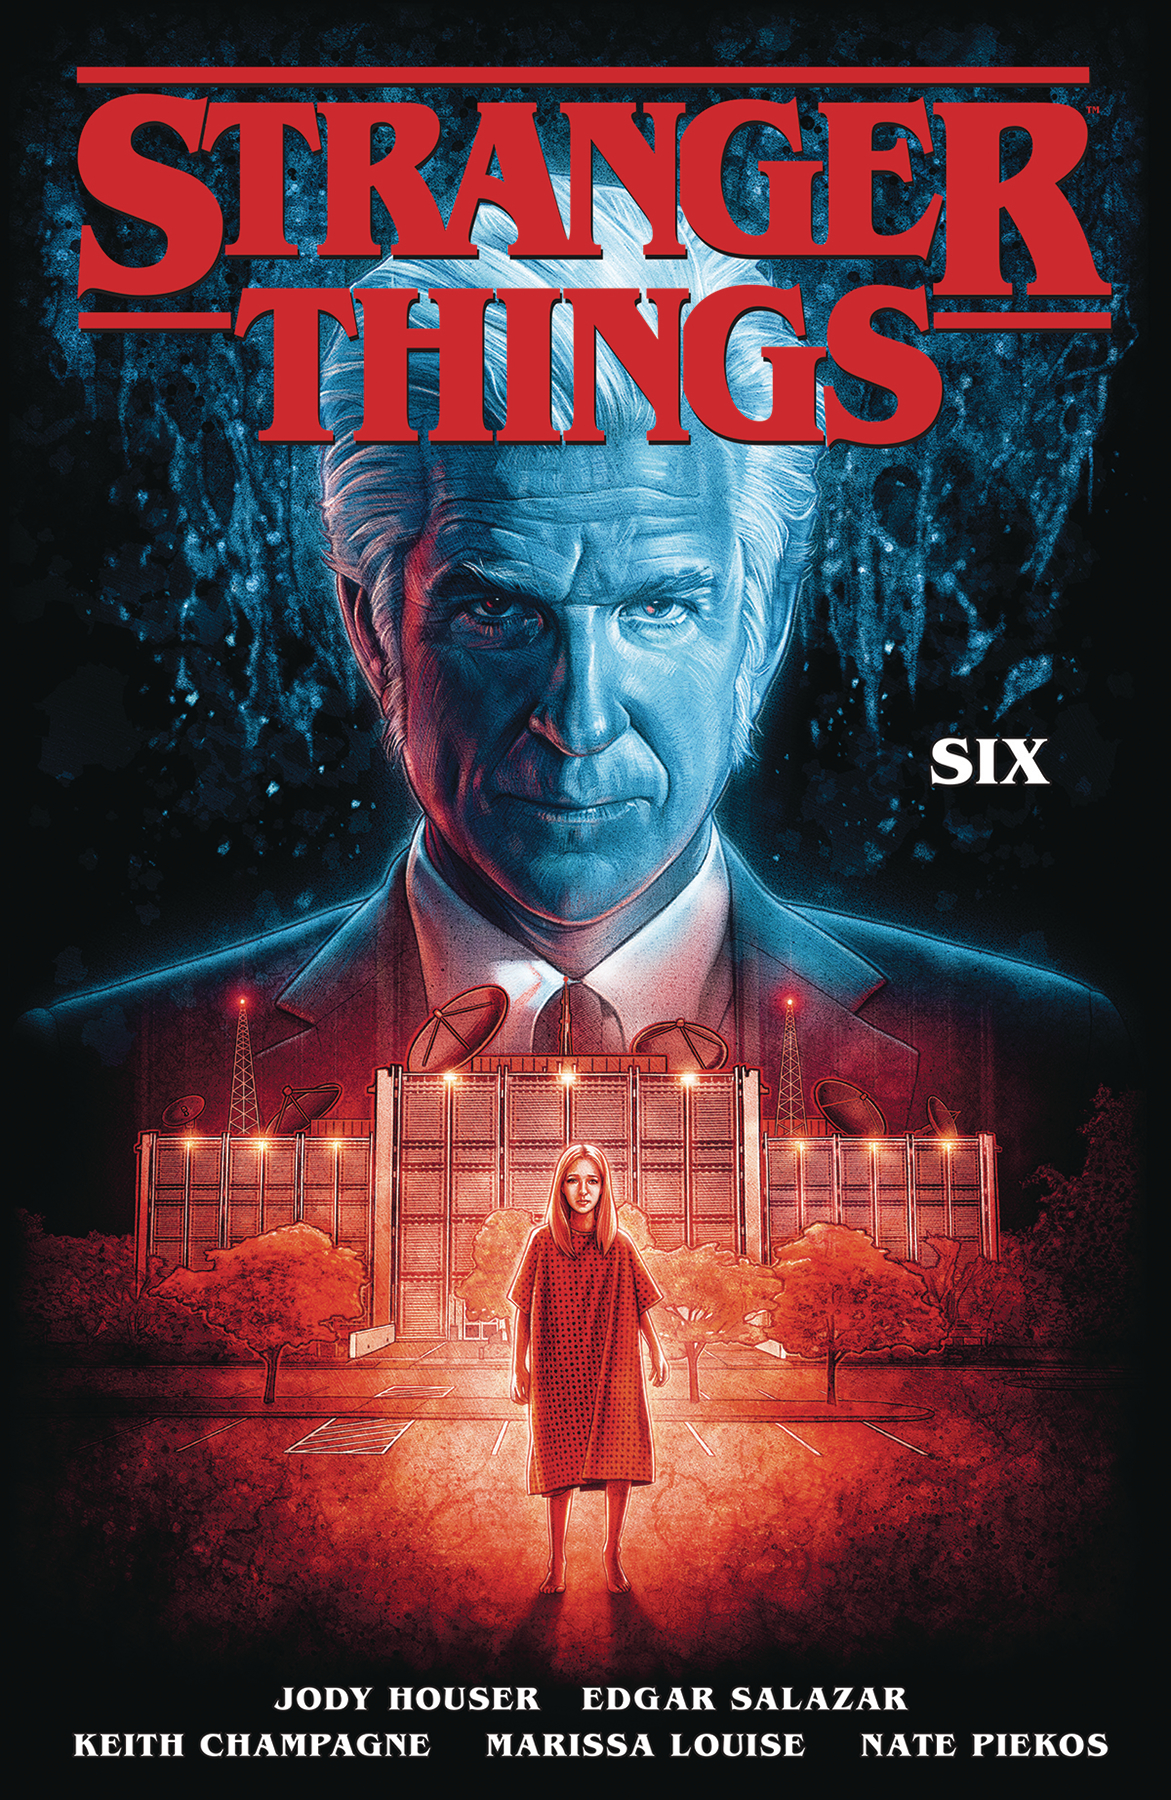 STRANGER THINGS TP VOL 02 SIX (JUL190353)